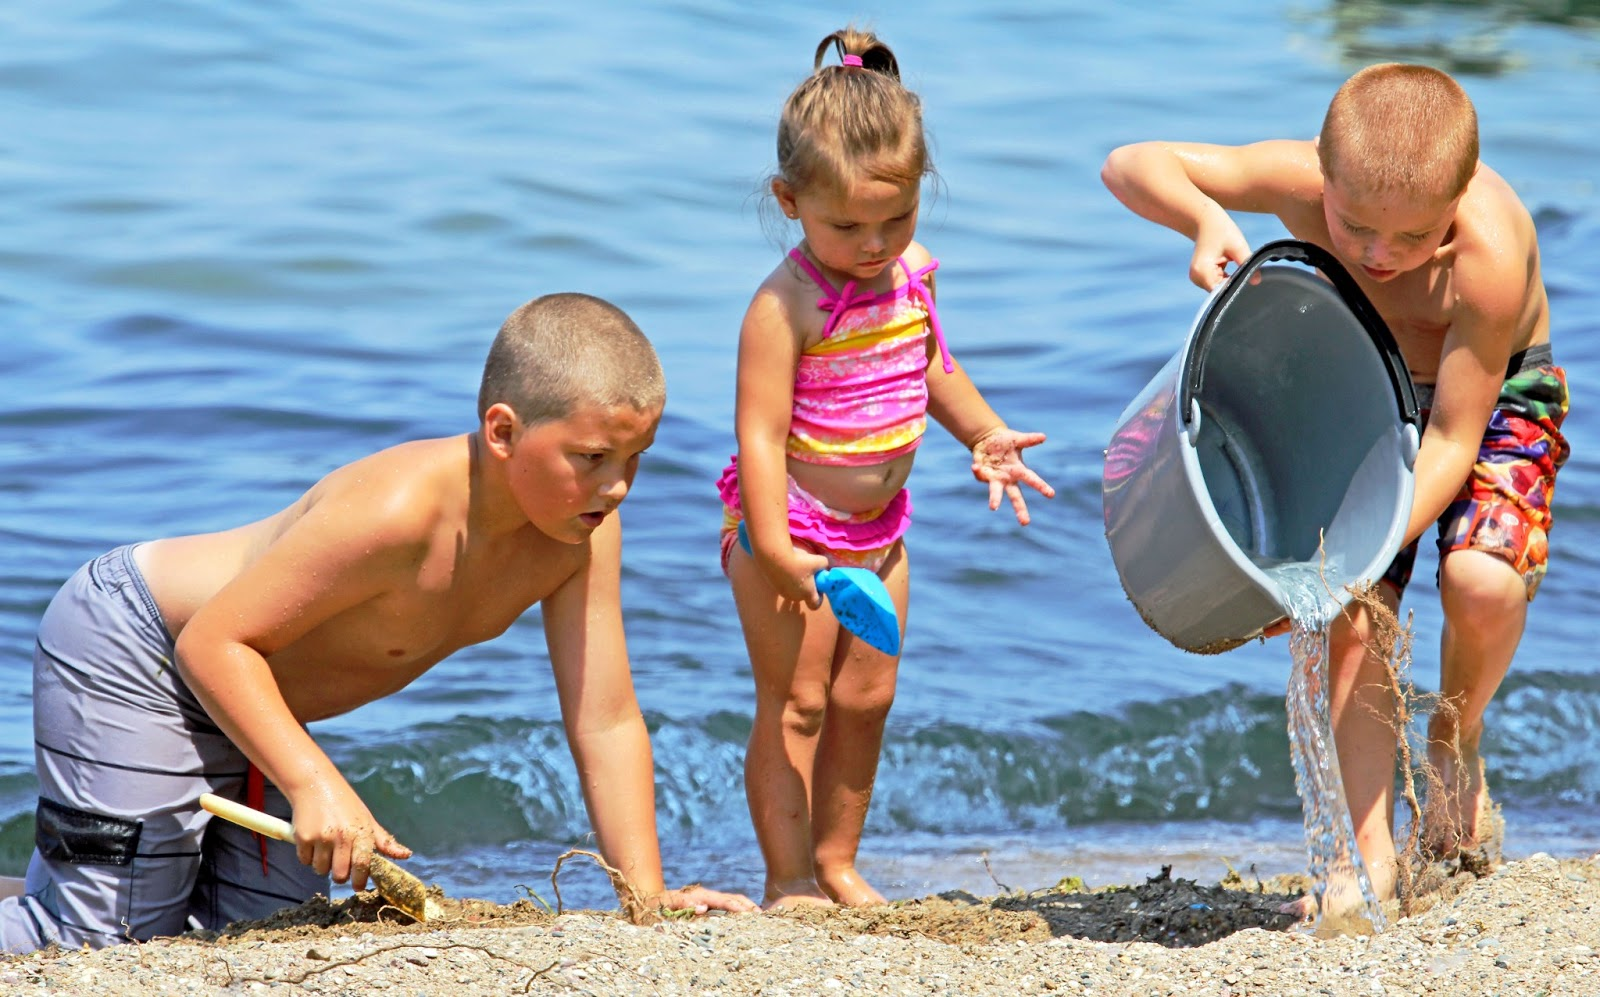 Kids Swimming In A Lake funke photos: at the lake: kids at play